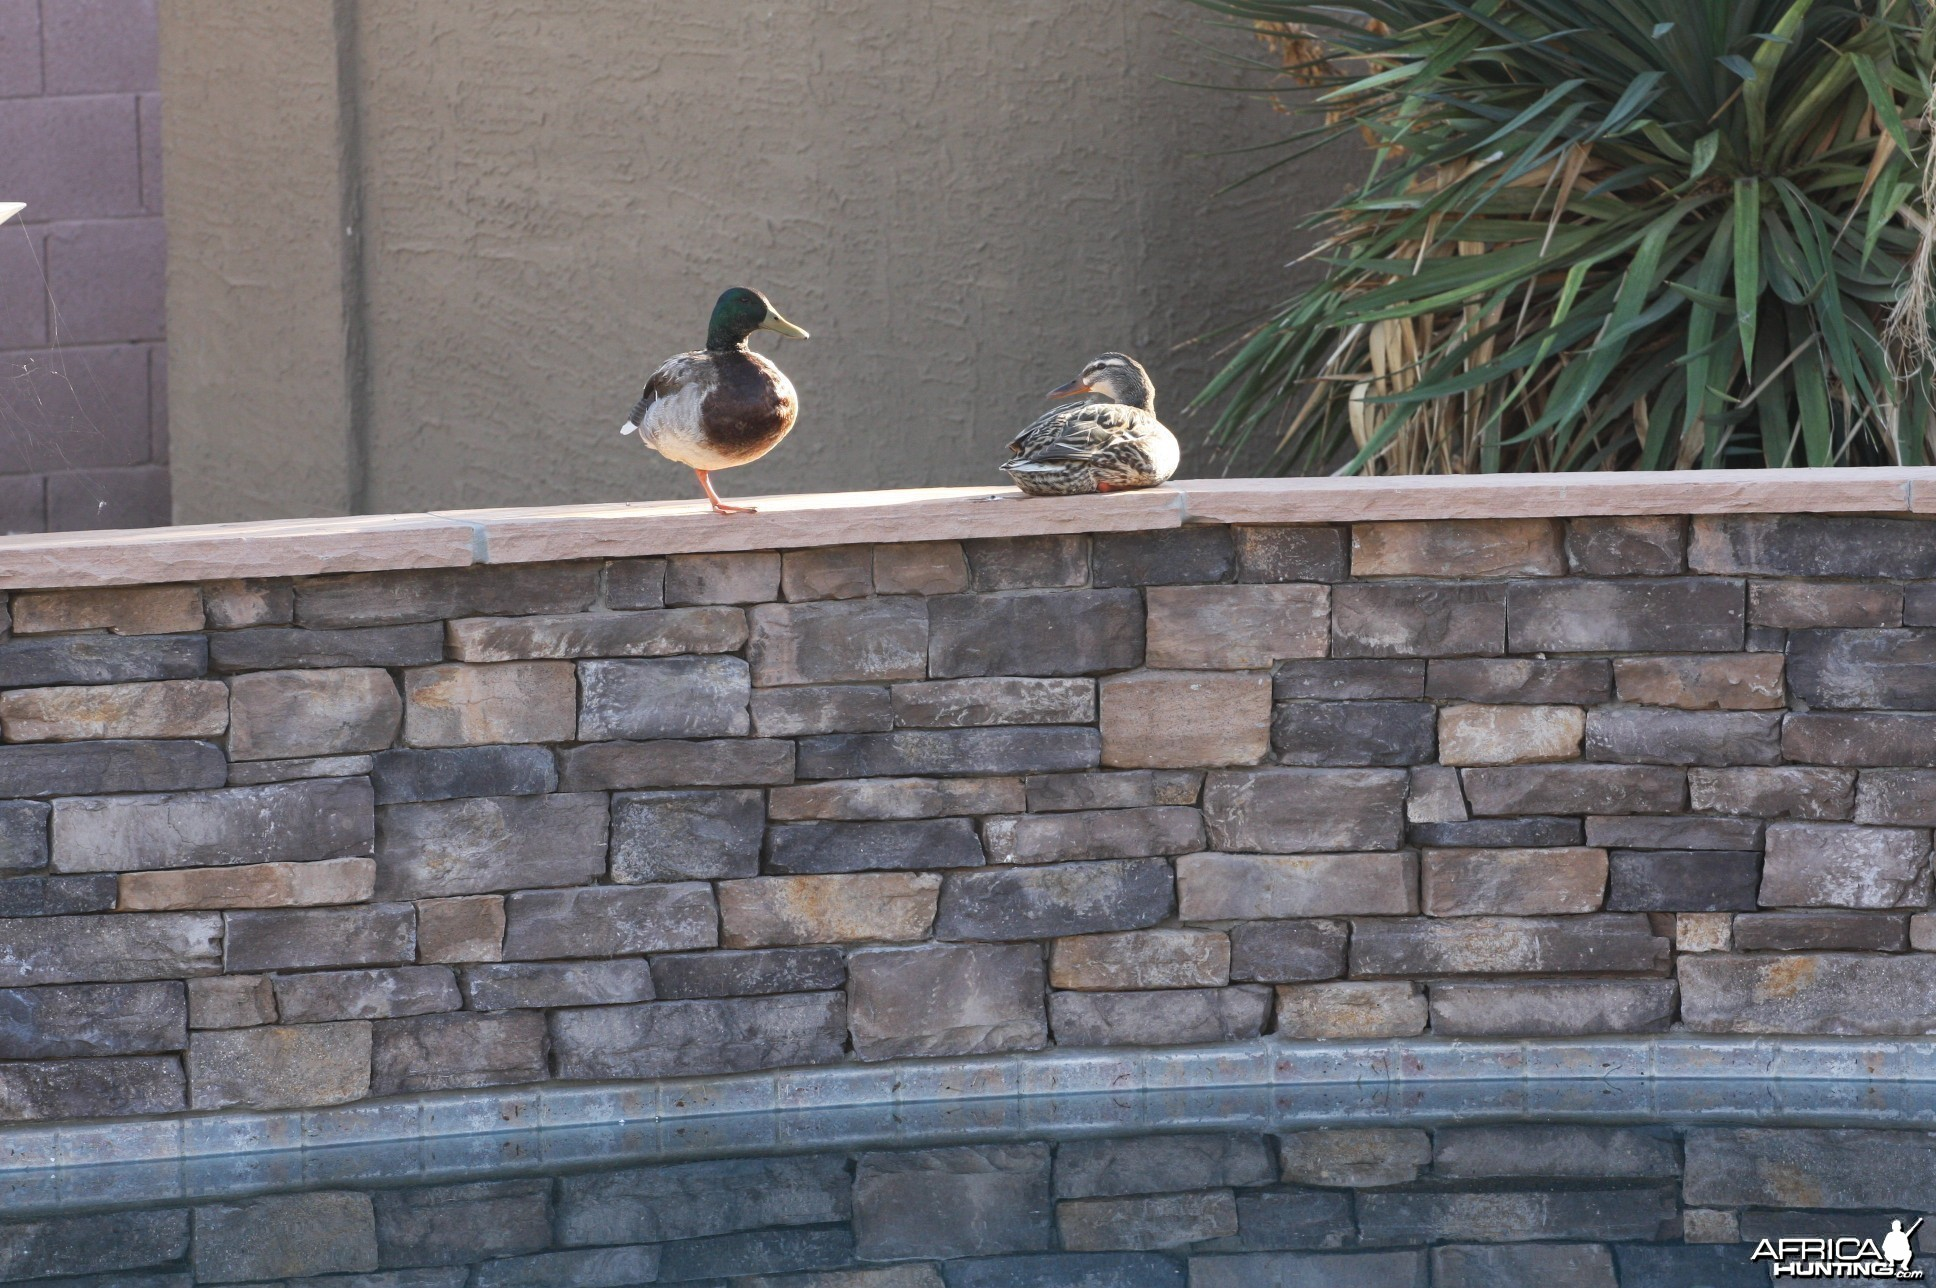 Ducks on the Pool